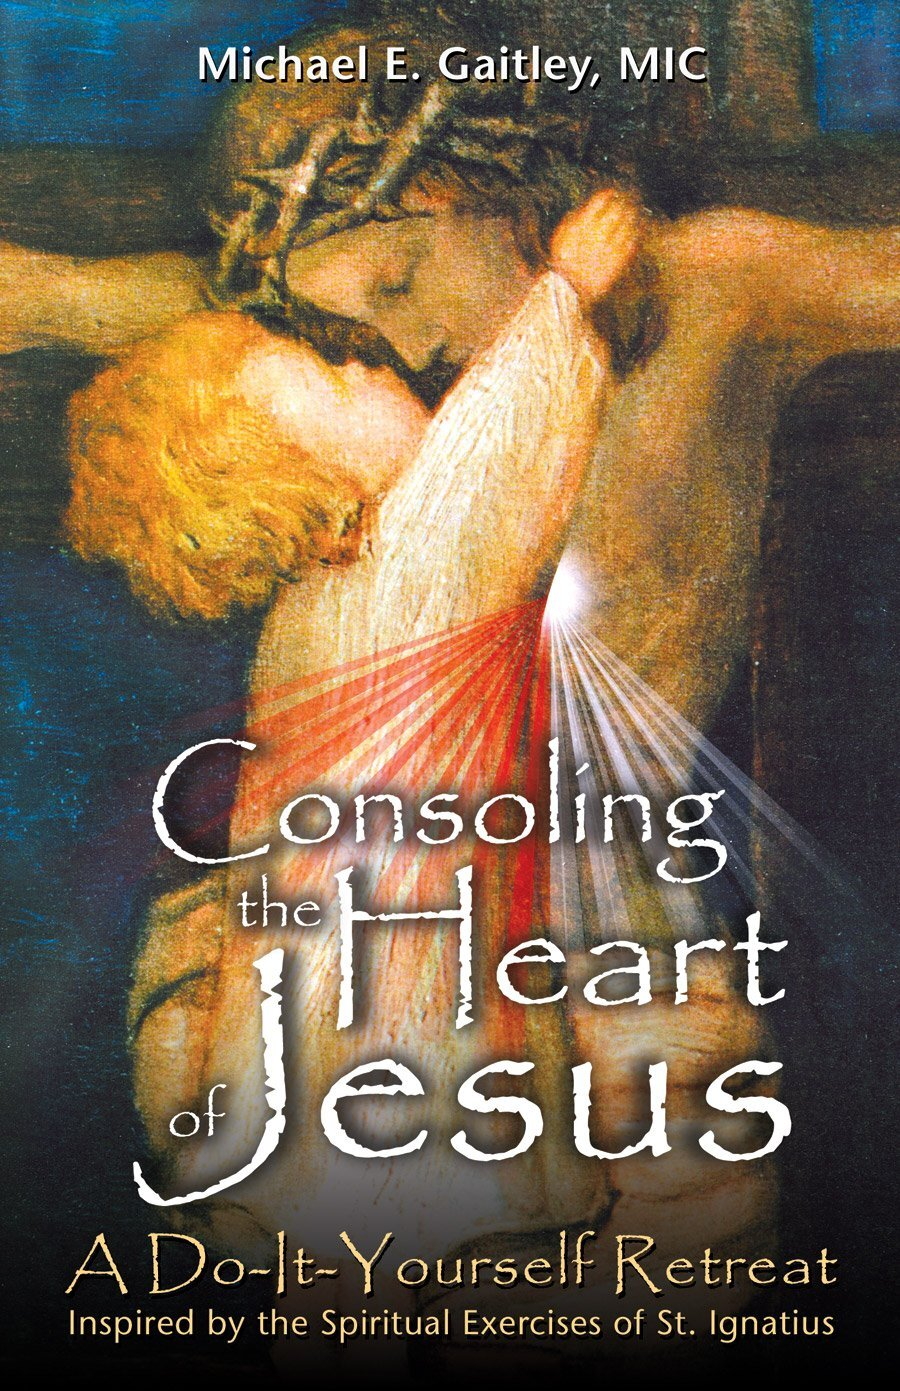 Register for Consoling the Heart of Jesus Group Retreat!